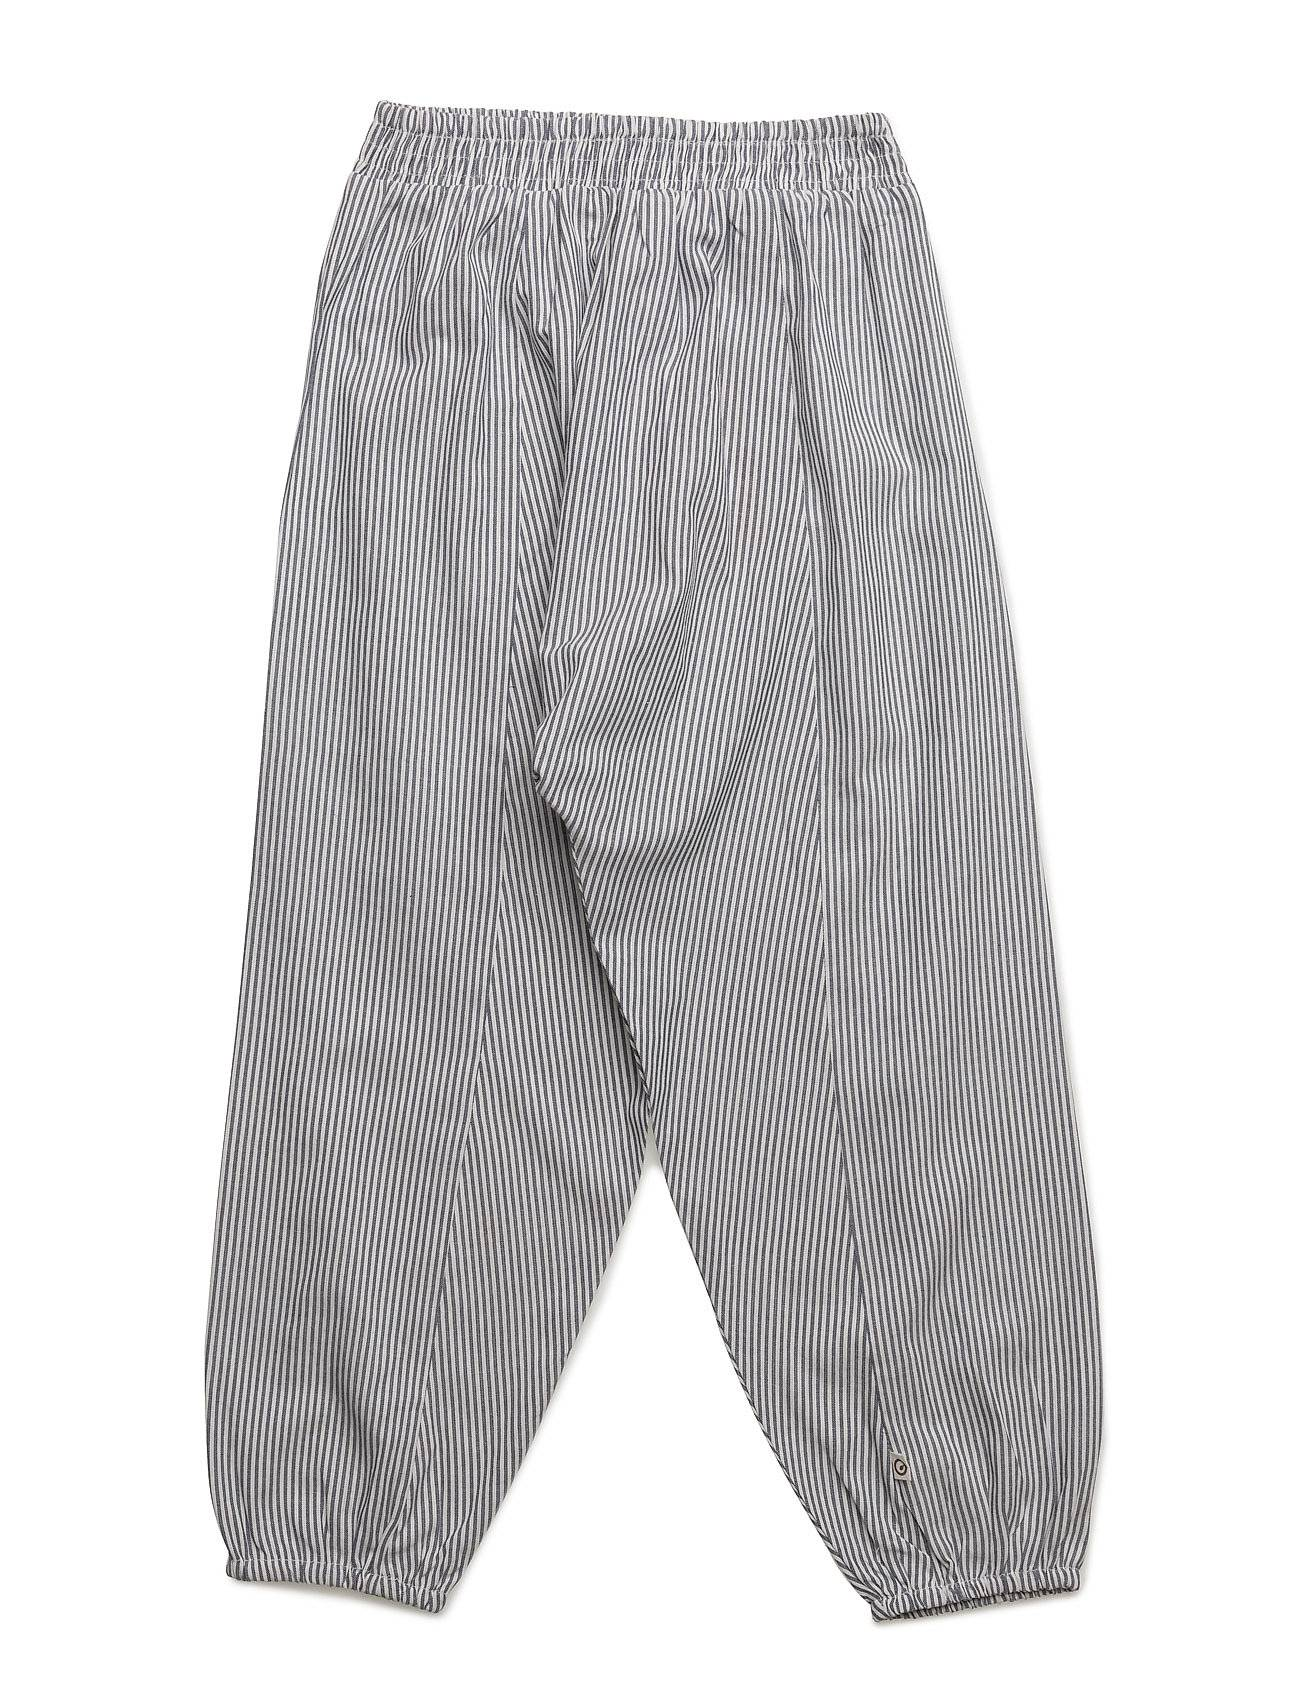 Müsli by Green Cotton Woven Pants